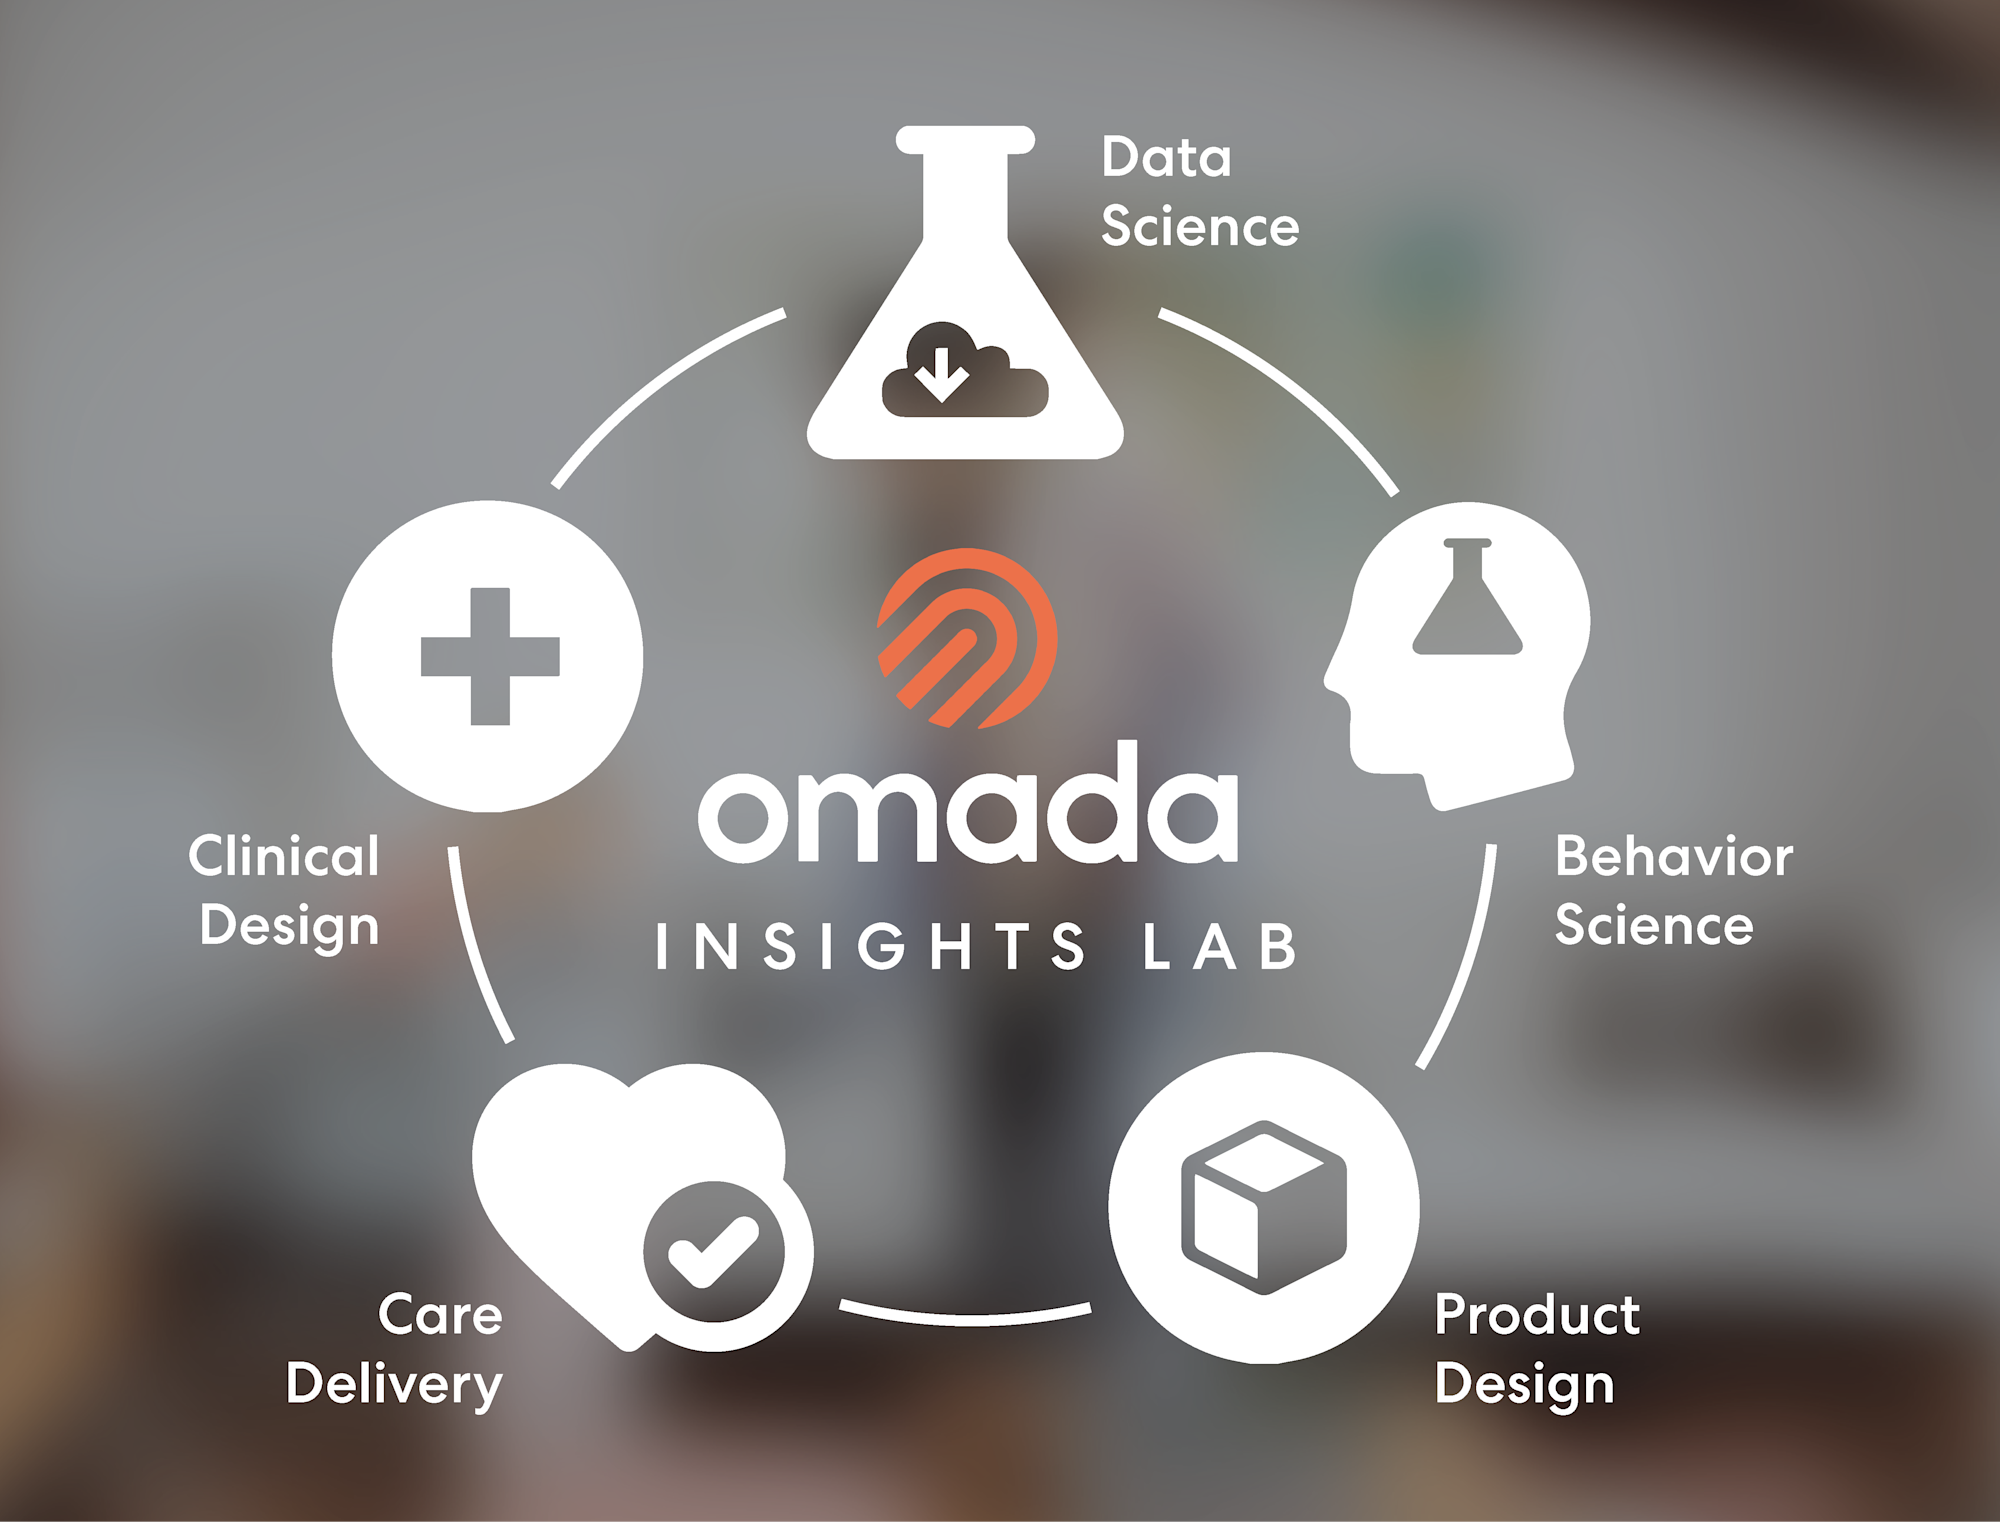 Omada Health launches the Omada Insights Lab to help improve healthcare outcomes